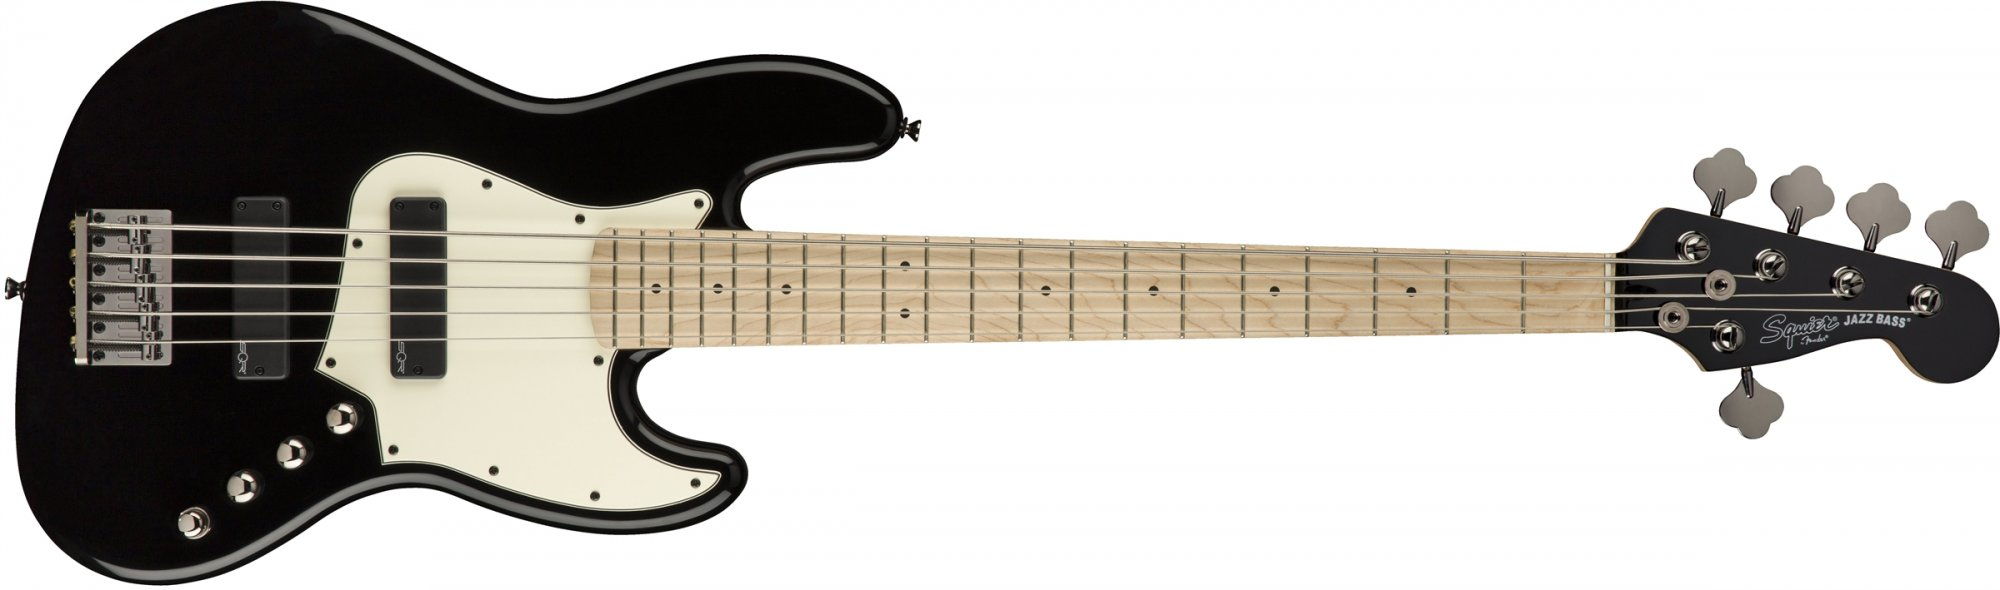 Contemporary Active Jazz Bass V HH Blk